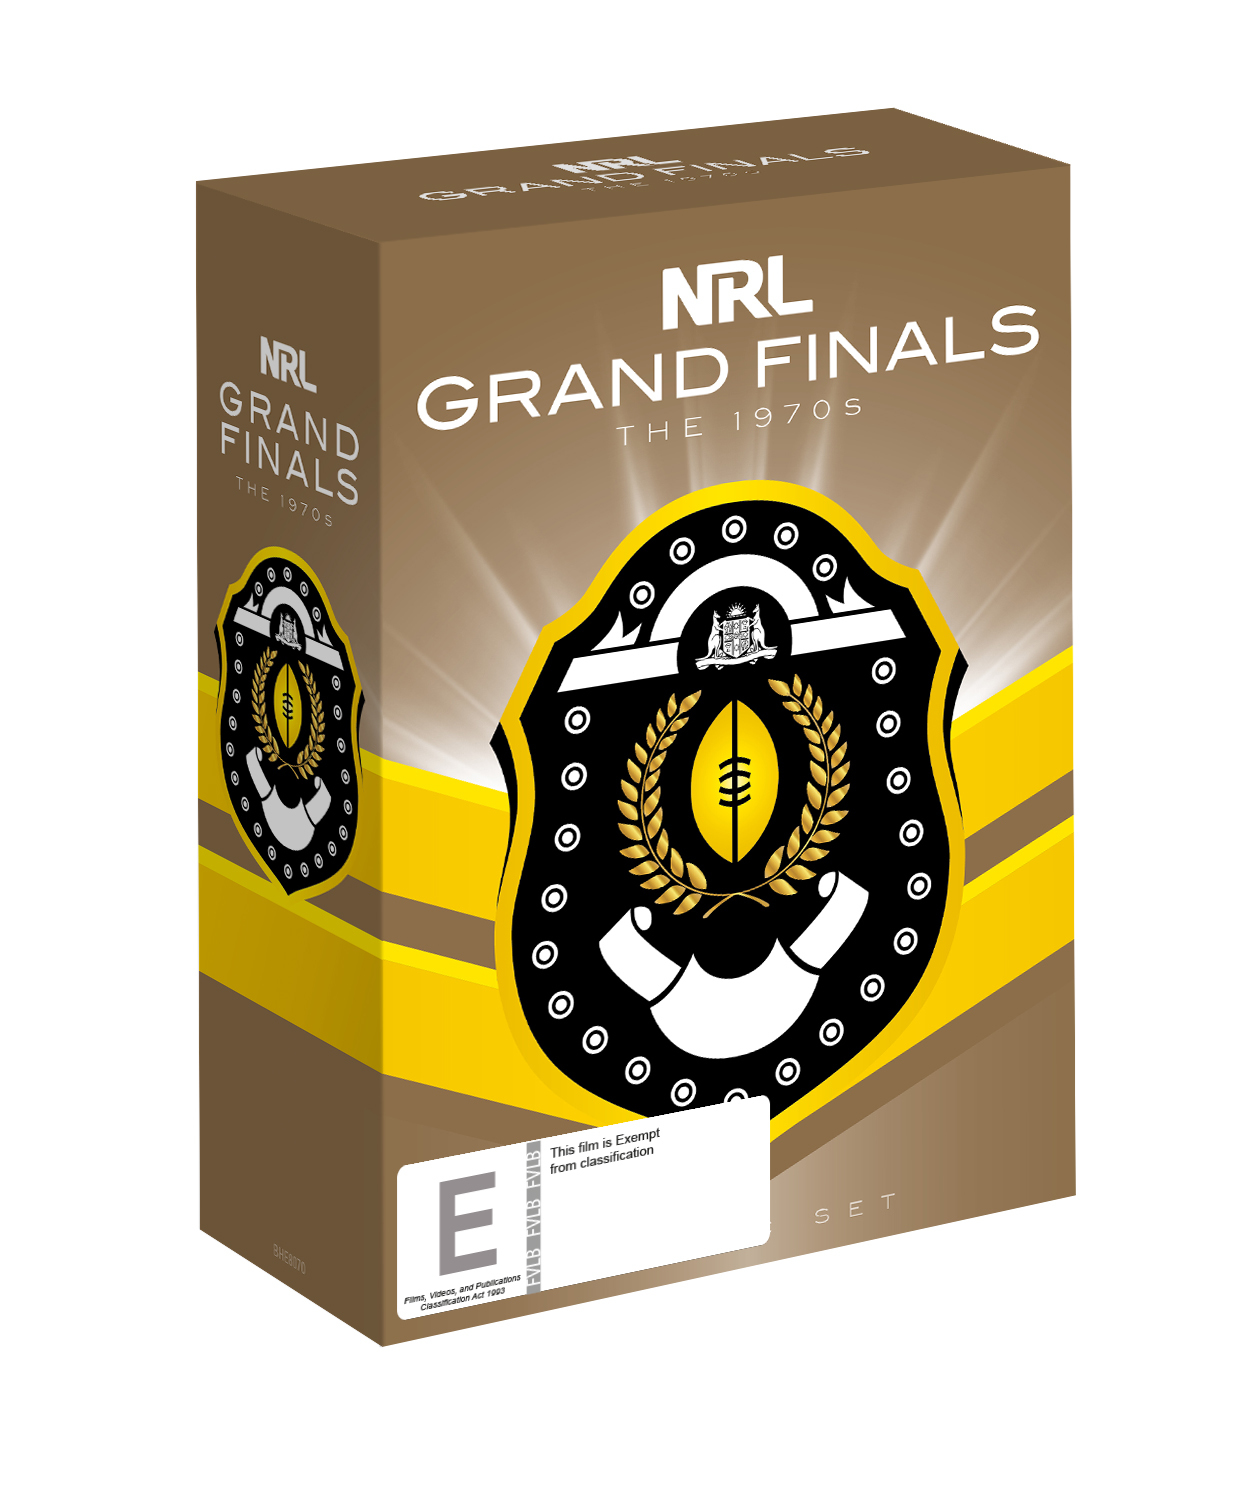 NRL The Grand Finals Collection The 1970s on DVD image